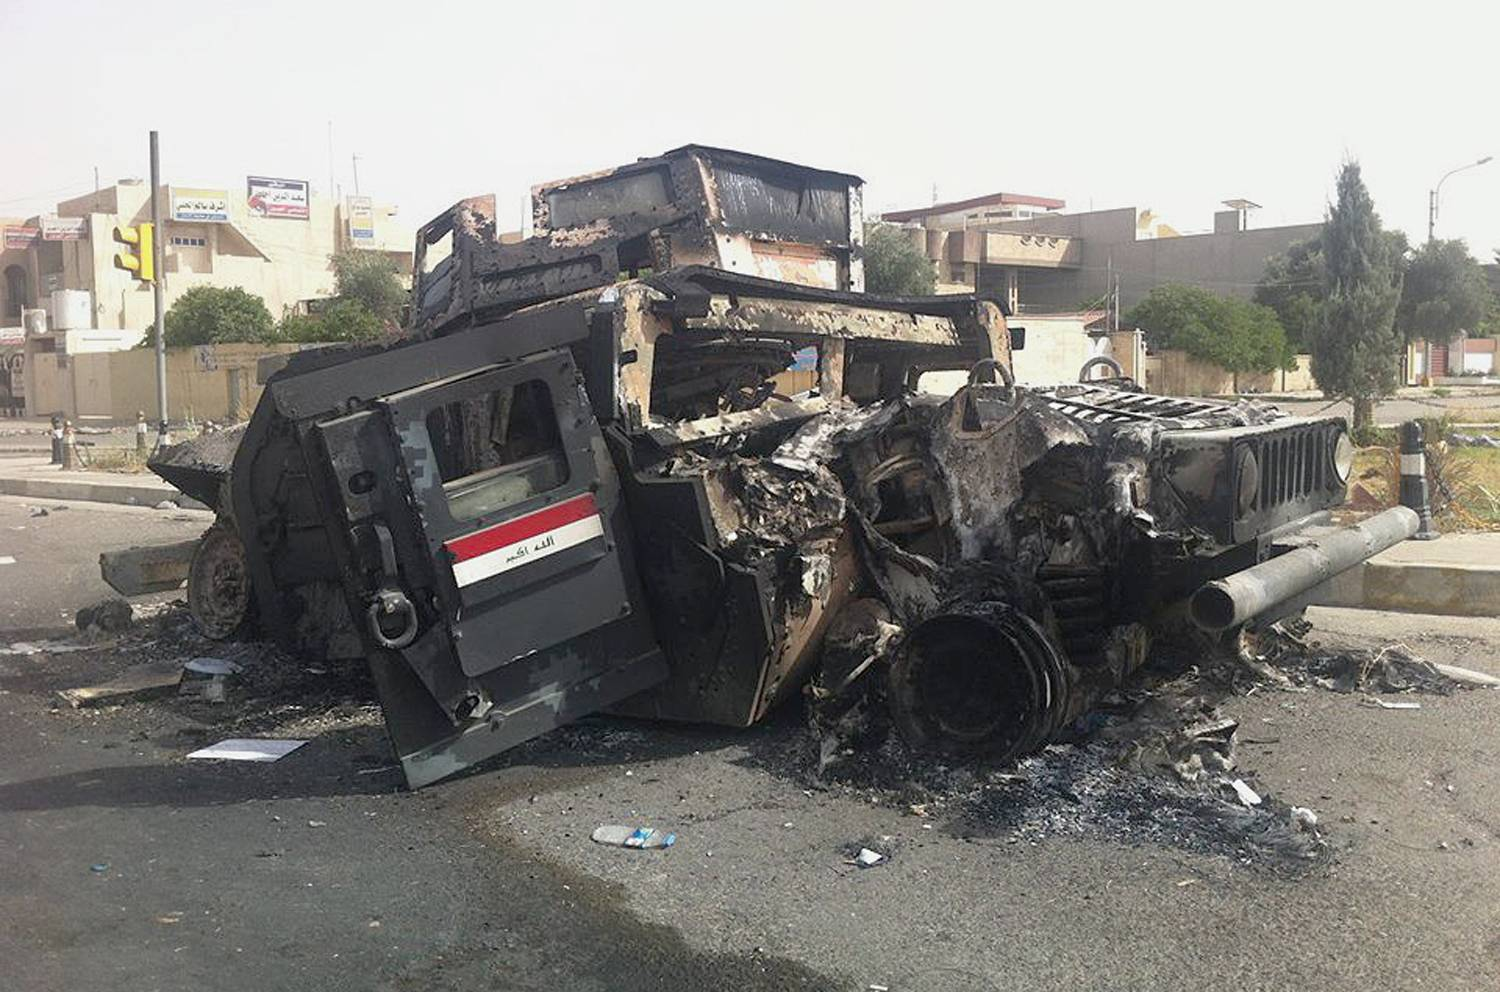 Iraqi army armored vehicle is seen burned on a street of the northern city of Mosul, Iraq, Thursday, June 12, 2014. The al-Qaida-inspired group that captured two key Sunni-dominated cities in Iraq this week vowed on Thursday to march on to Baghdad, raising fears about the Shiite-led government's ability to slow the assault following the insurgents' lightning gains.